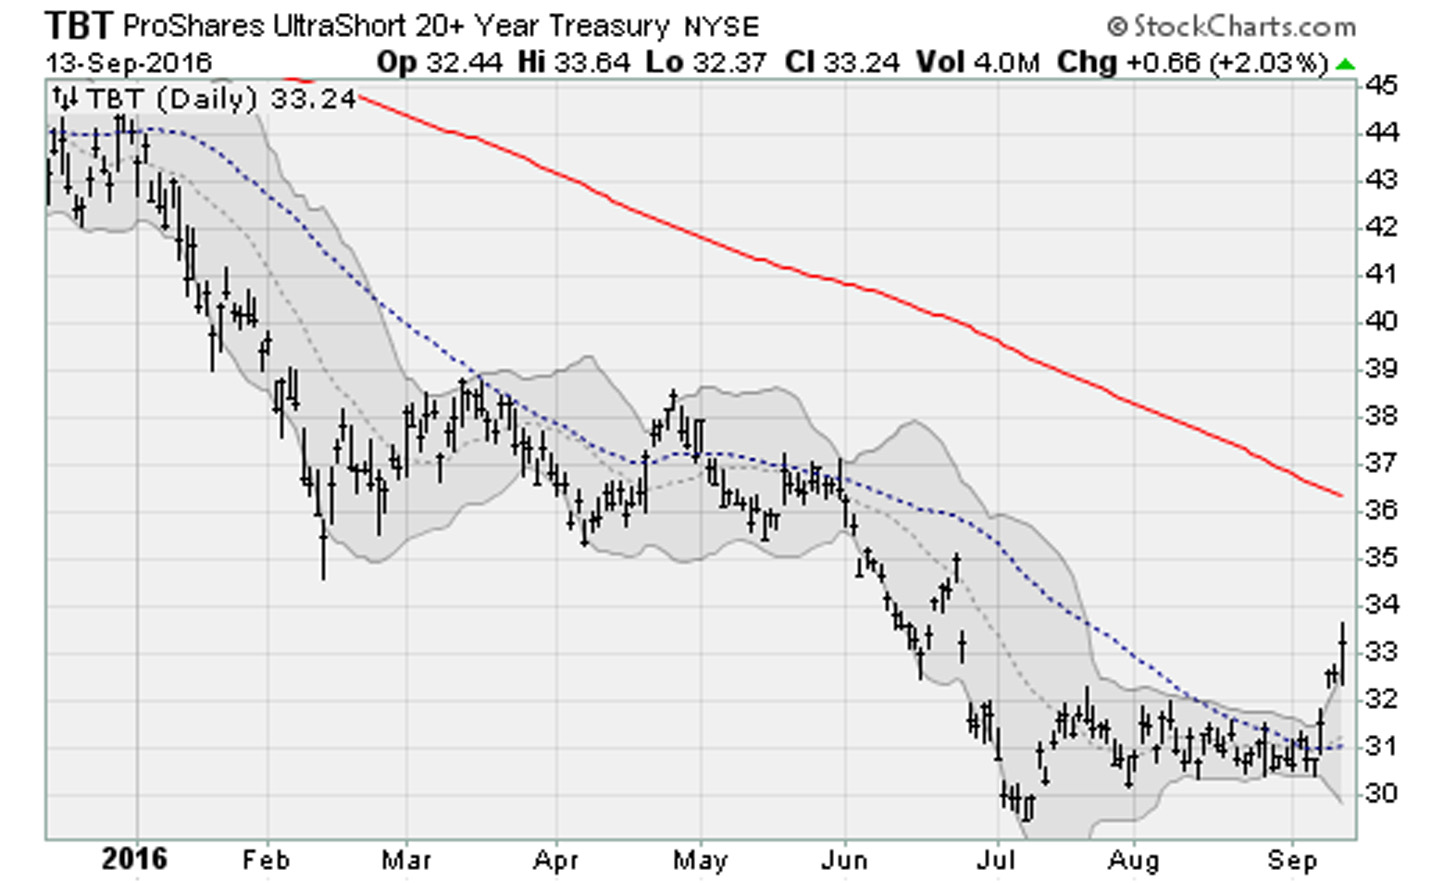 Treasury-TBT-ETF-ProShares